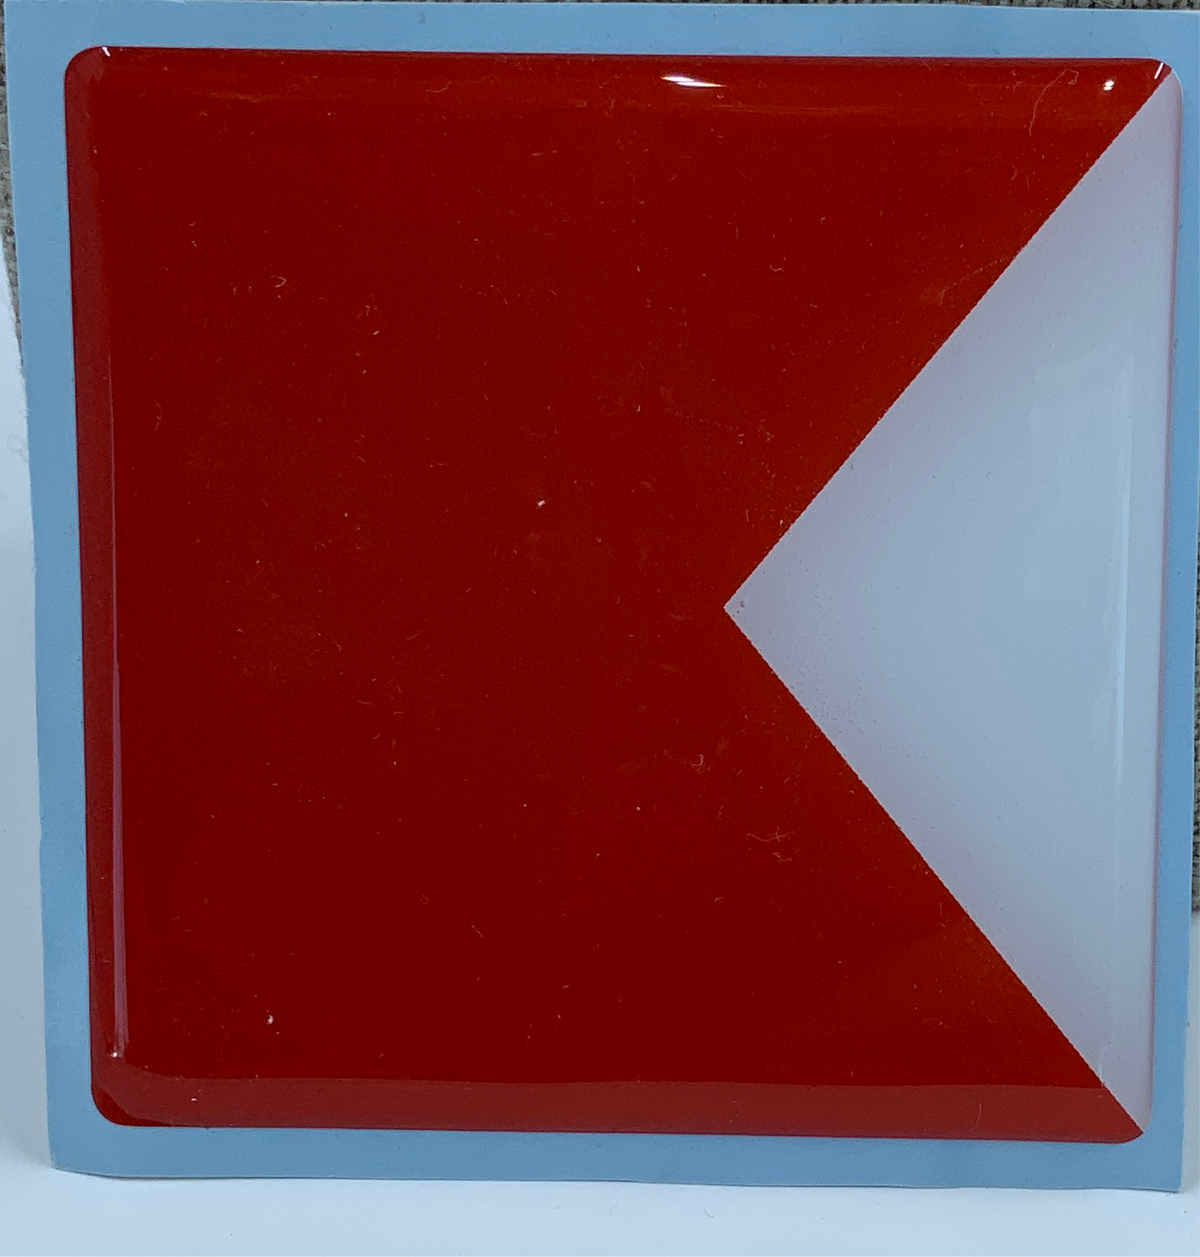 "3"" License Plate Code Flag"